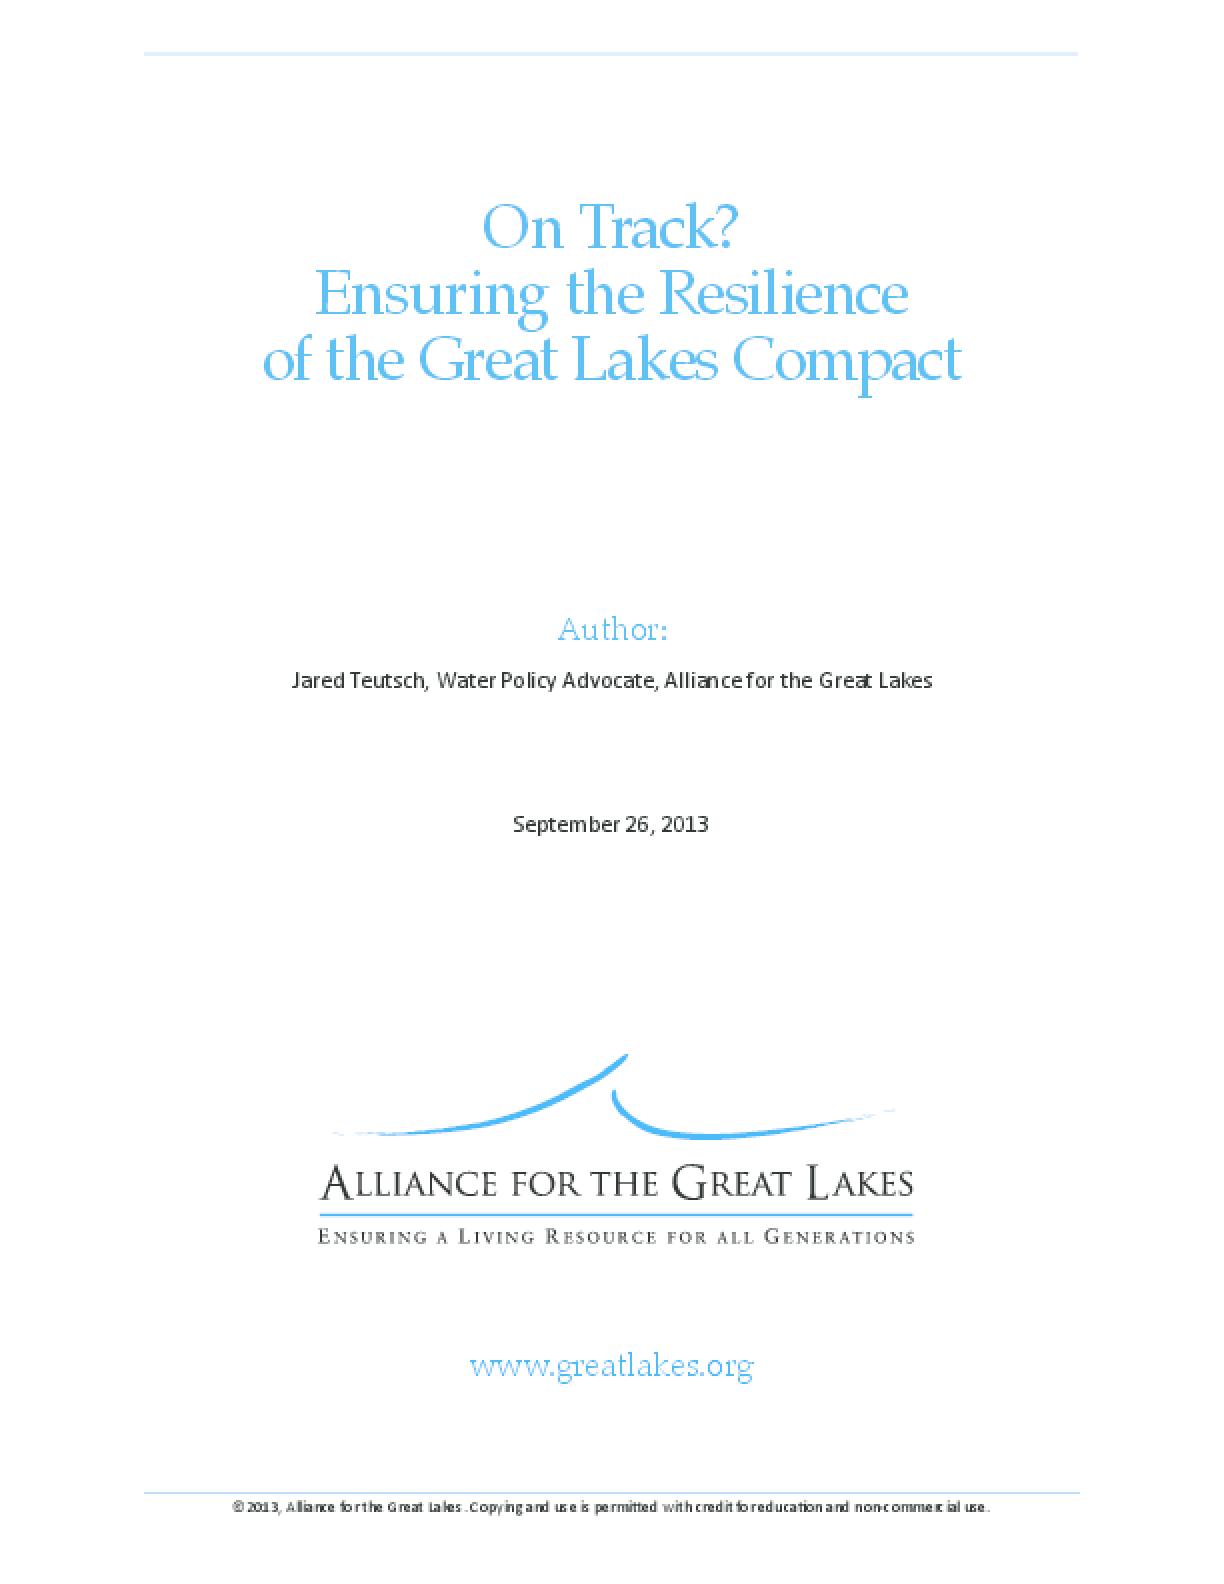 On Track? Ensuring the Resilience of the Great Lakes Compact